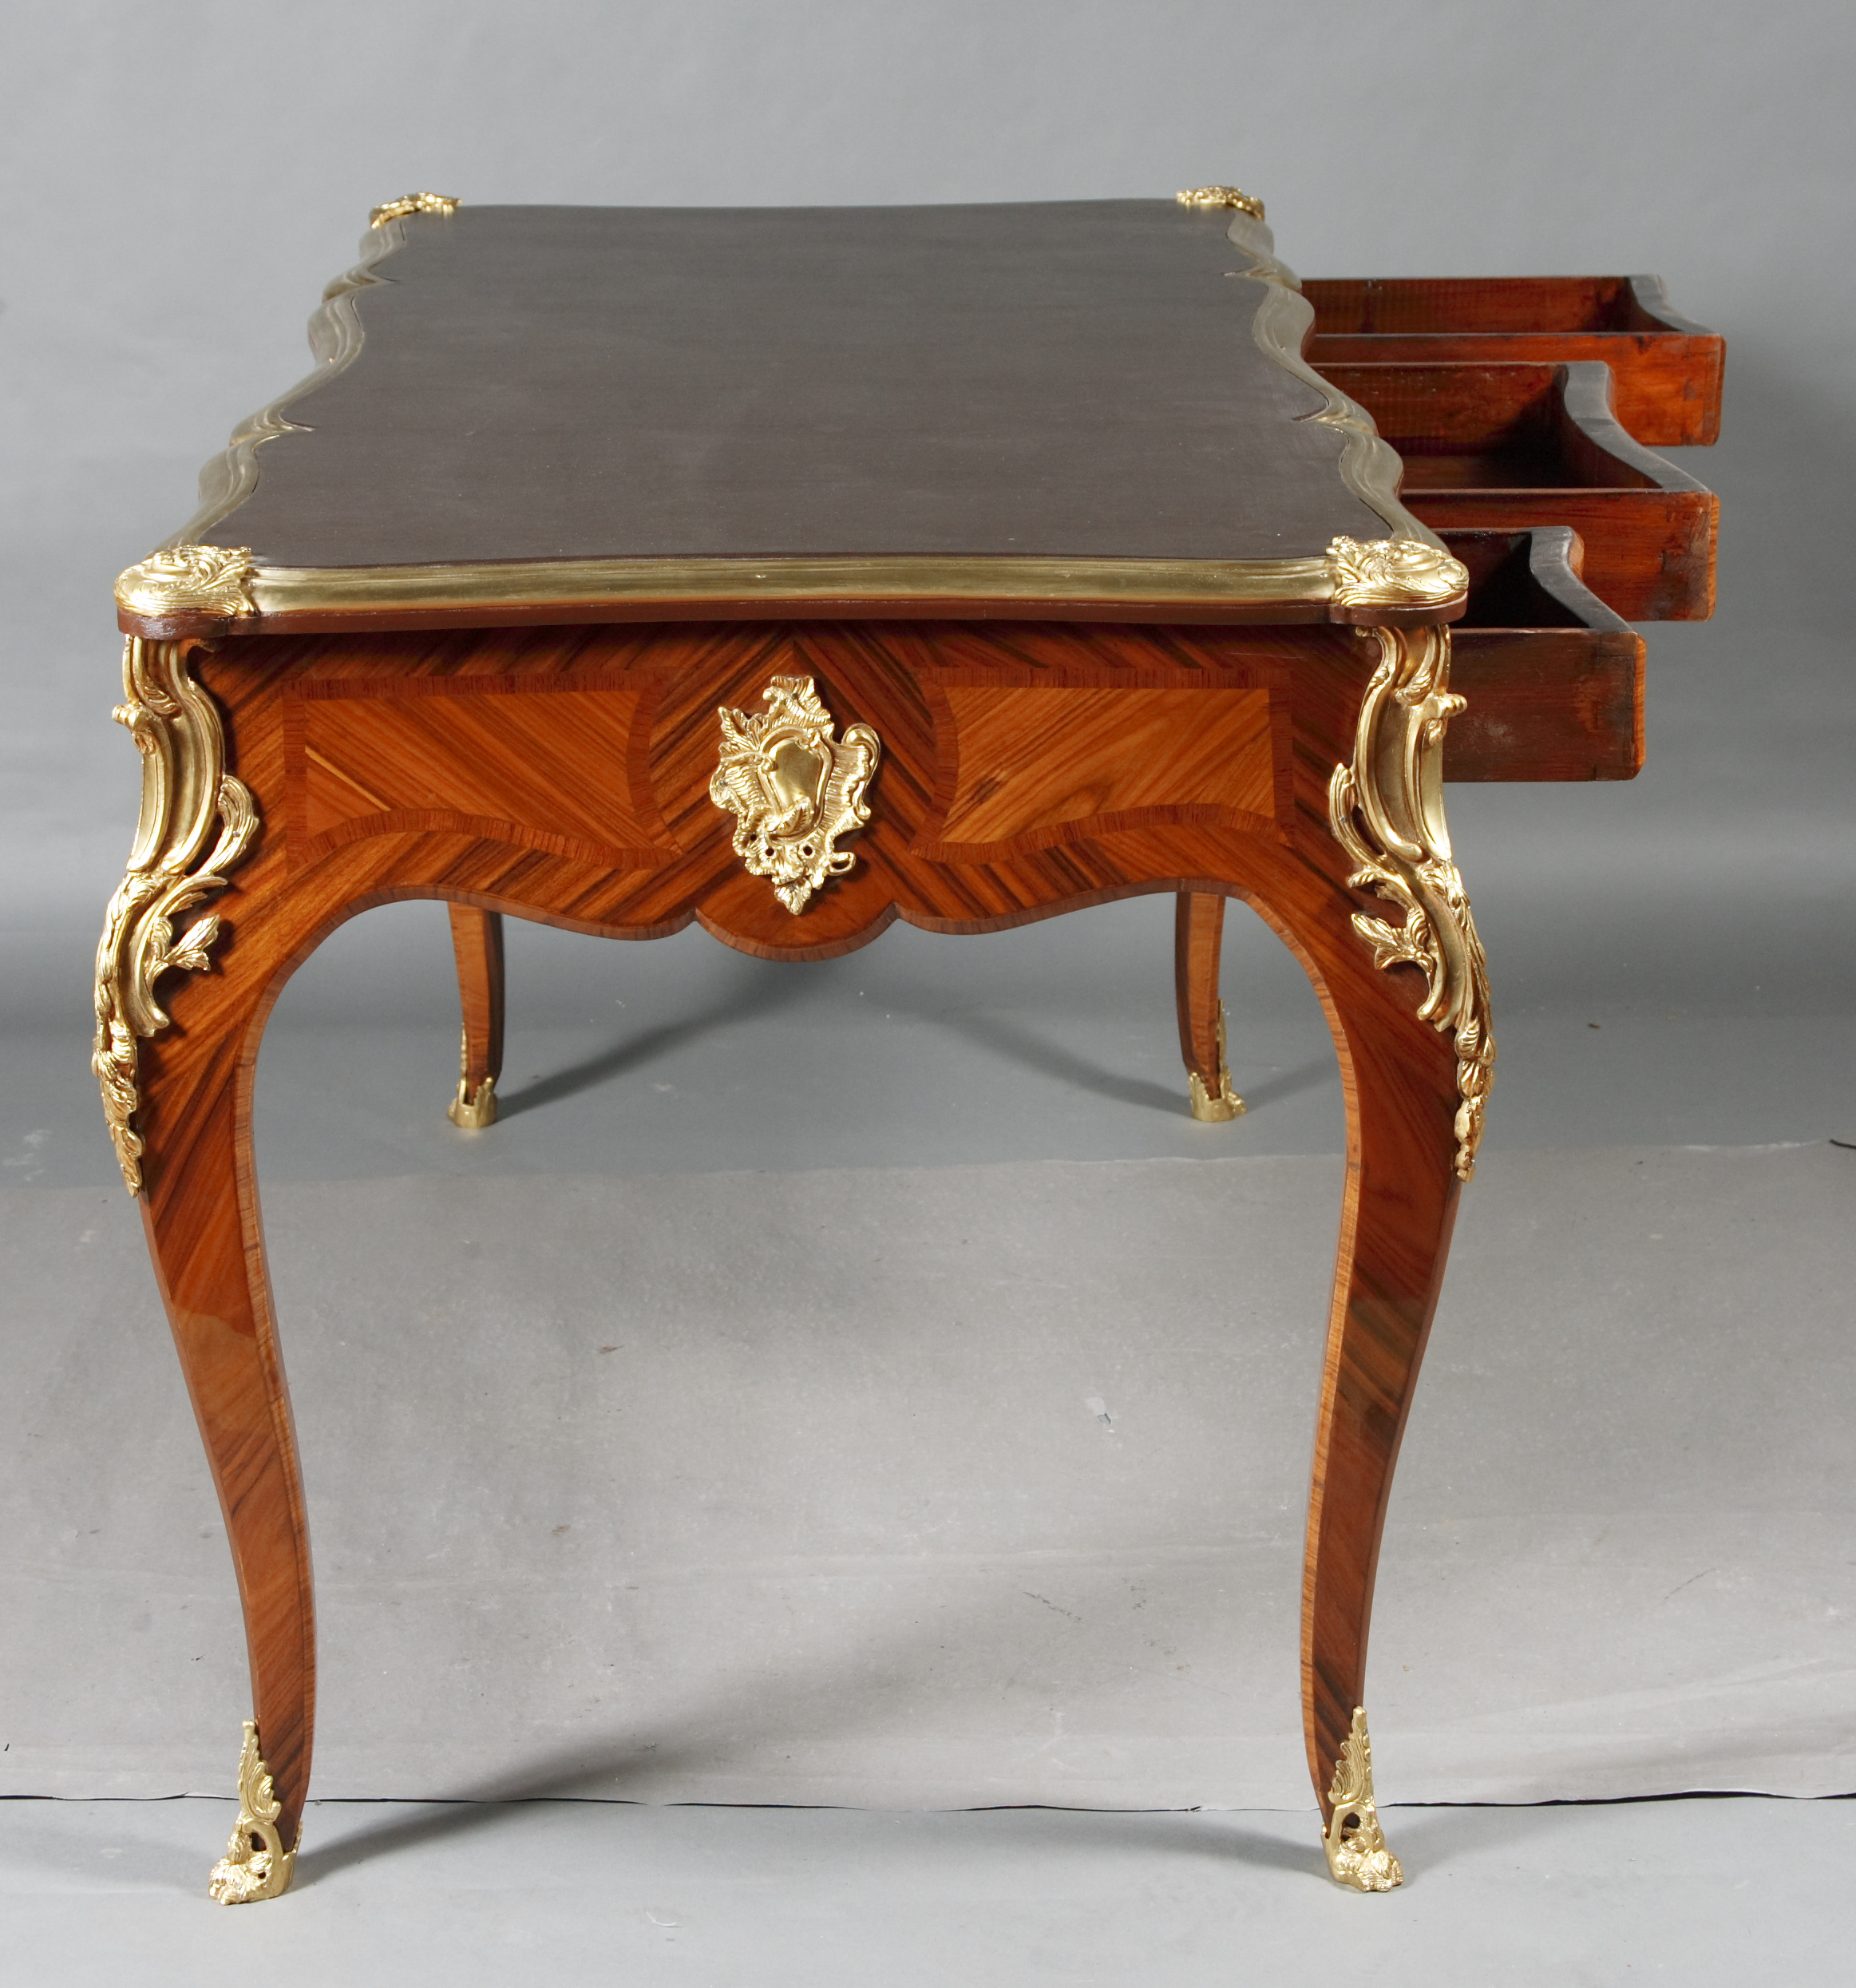 desk bureau plat in the louis xv style ebay. Black Bedroom Furniture Sets. Home Design Ideas